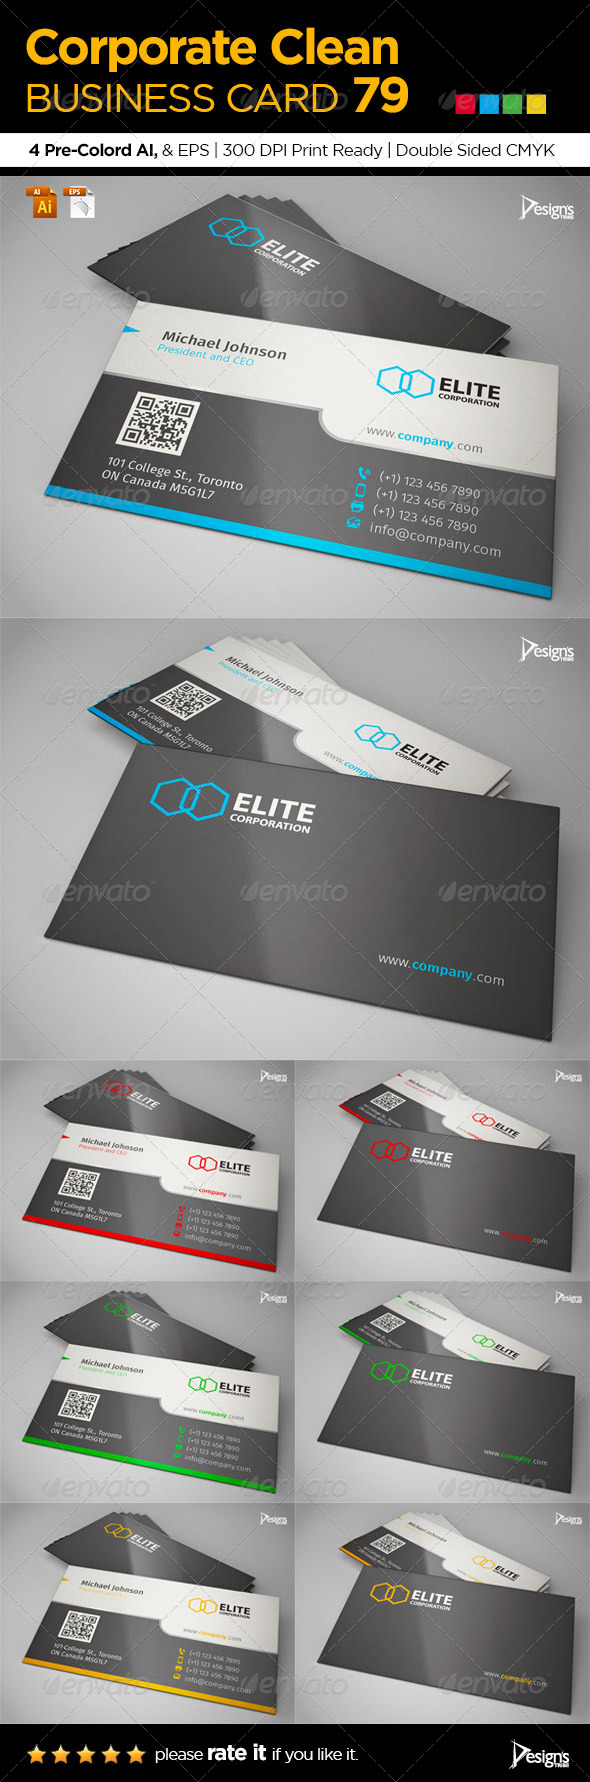 GraphicRiver Corporate Clean Business Card 79 6702764